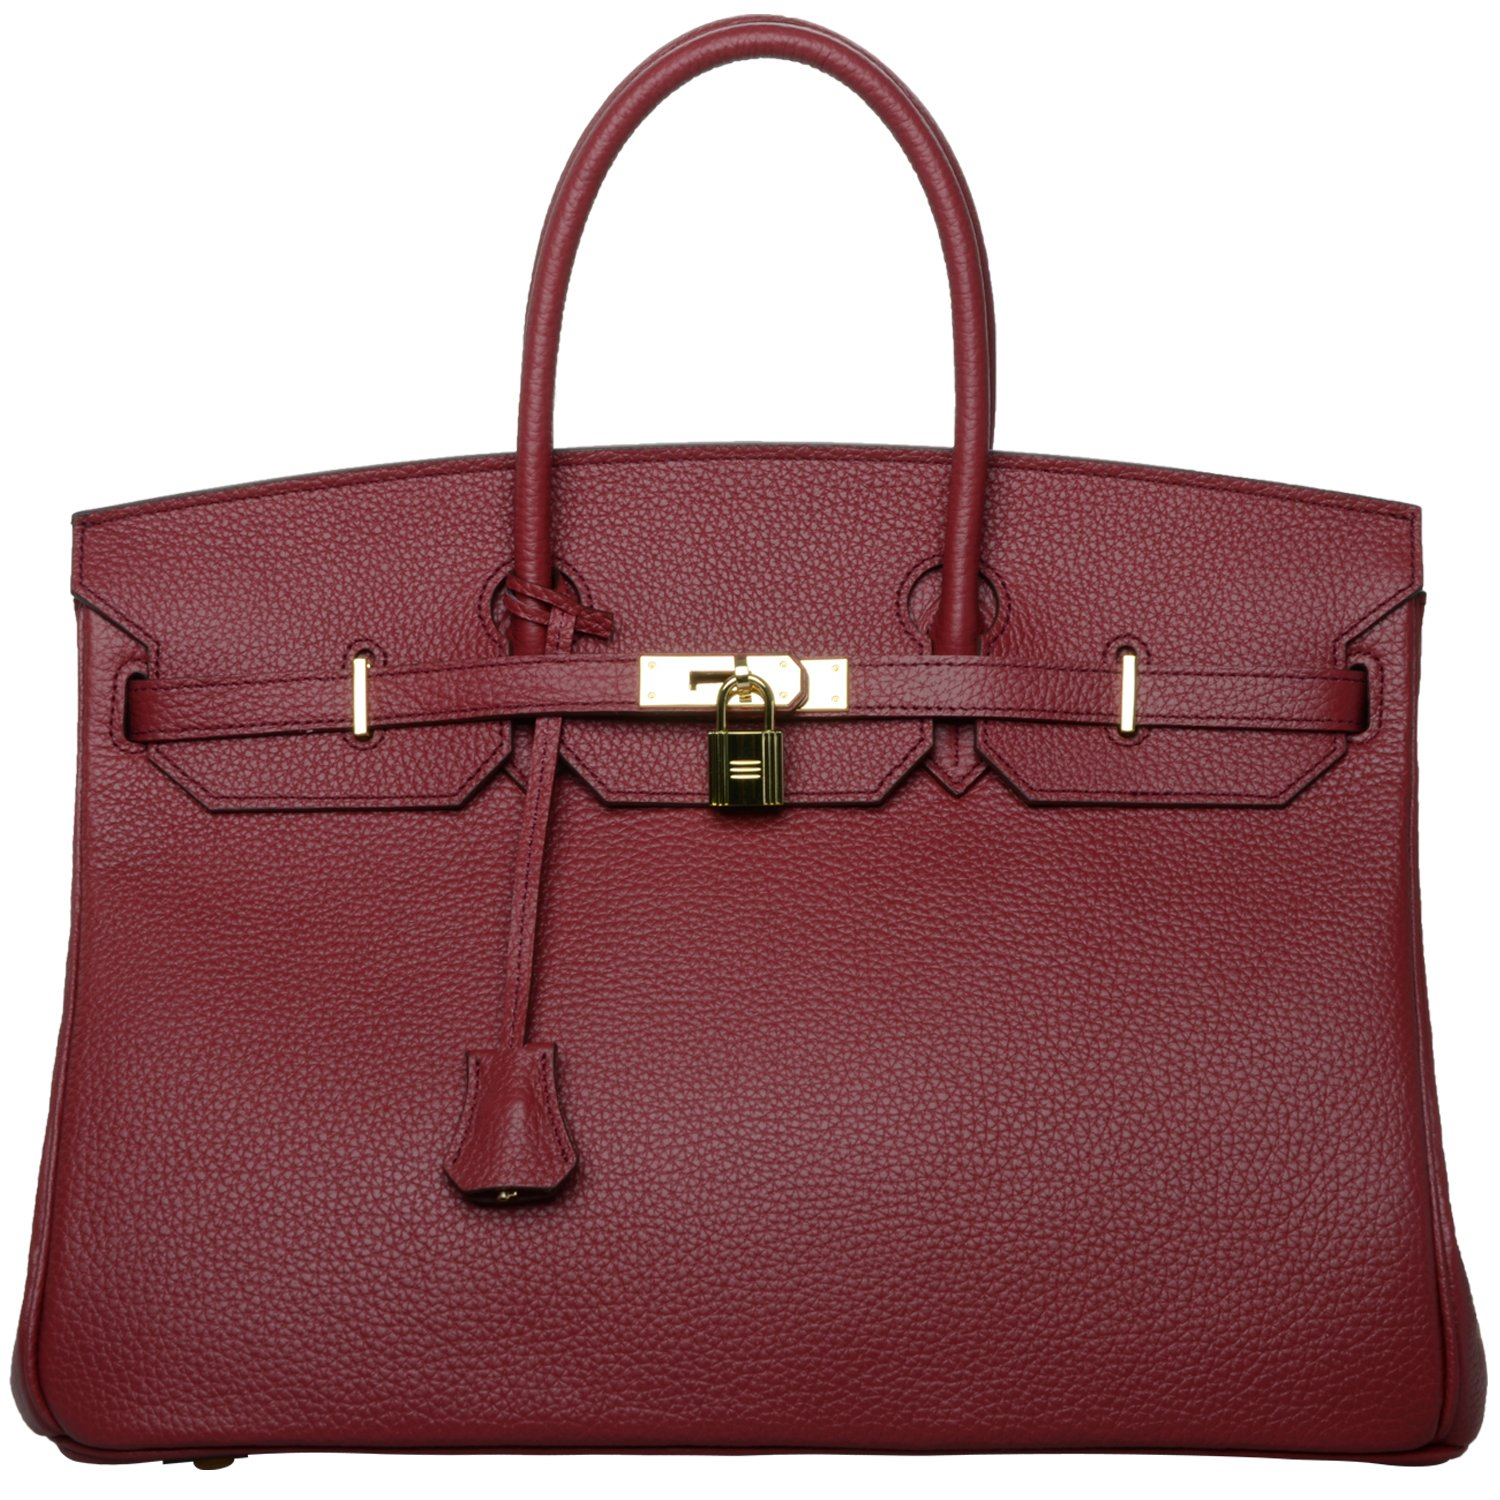 Cherish Kiss 40cm Oversized Padlock Business Office Top Handle Handbags (40cm with Gold Hardware, Burgundy with Burgundy color lining)